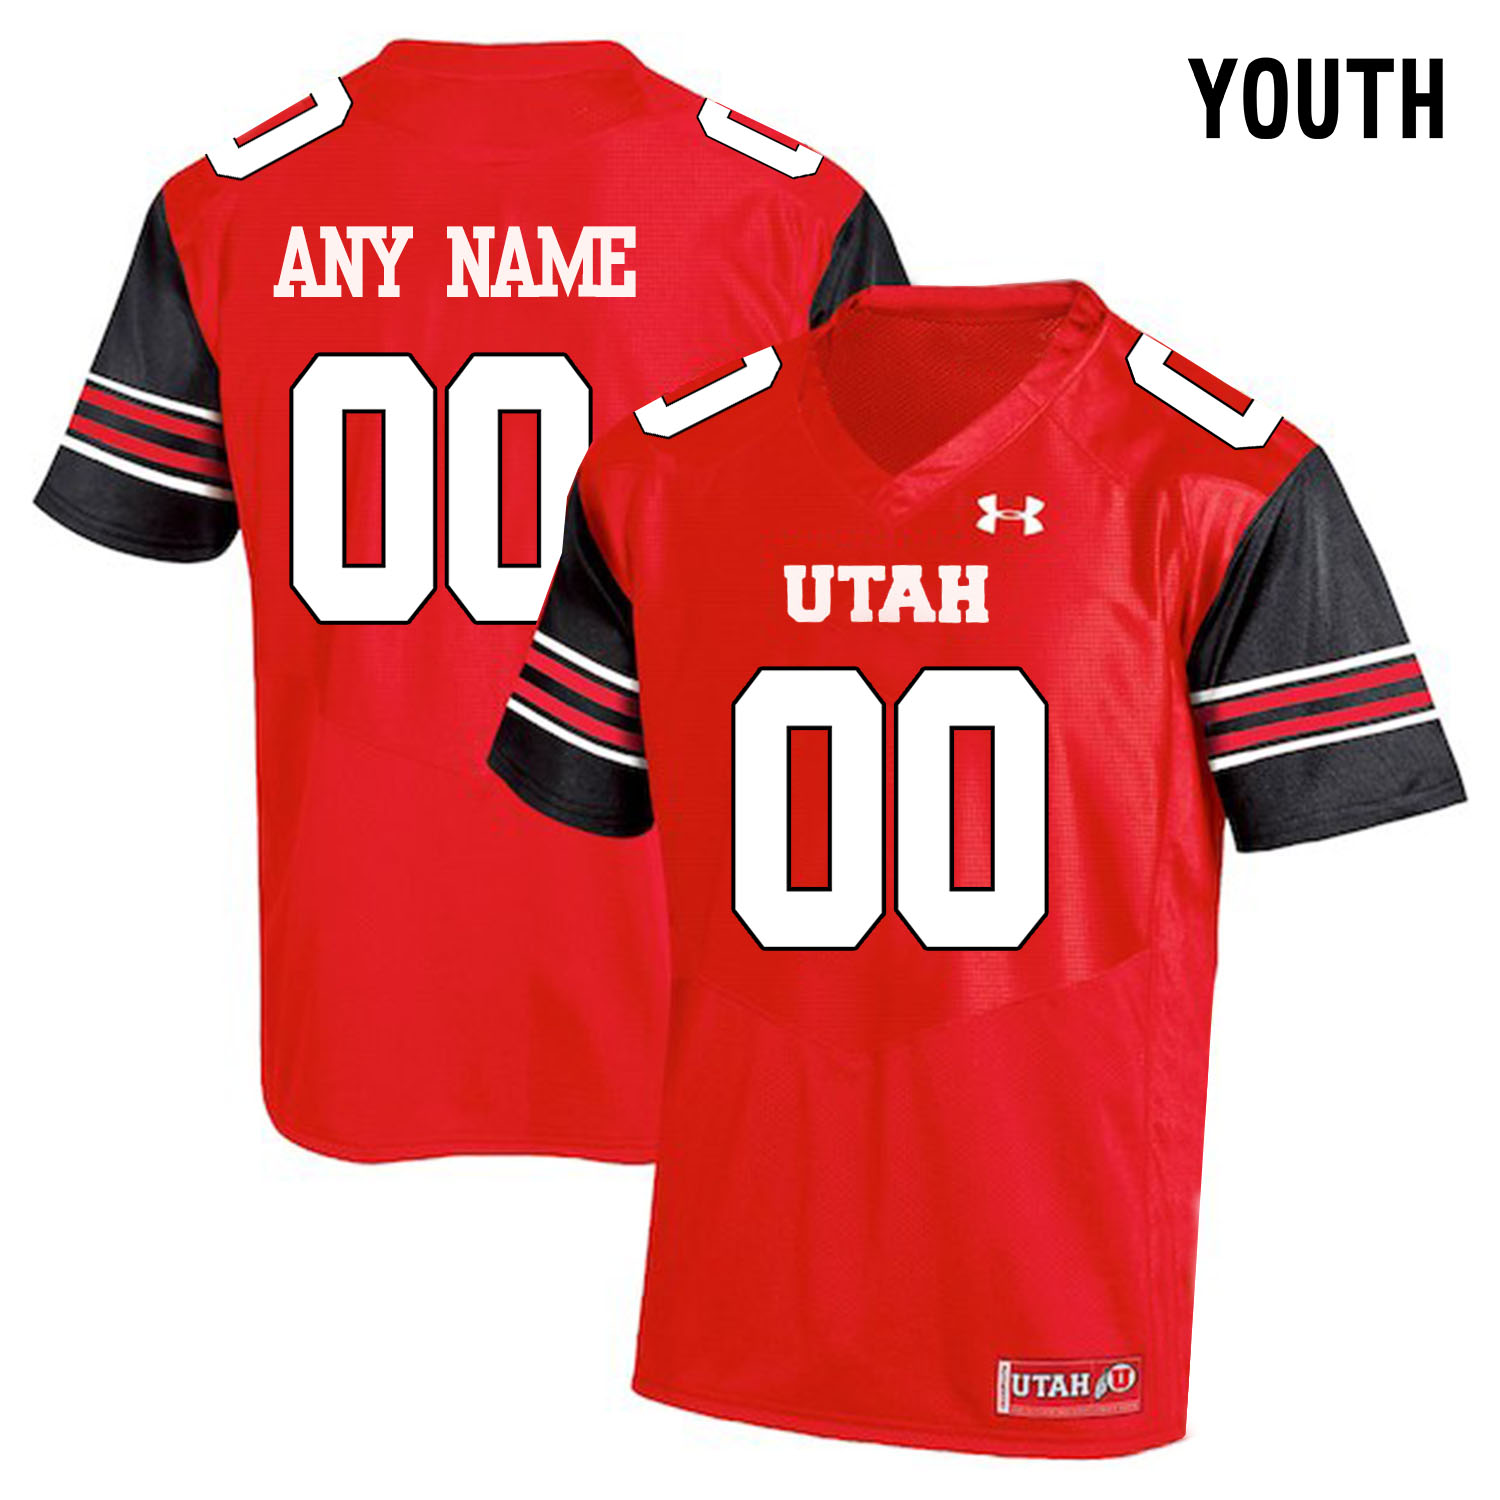 Utah Utes Red Youth's Customized College Football Jersey